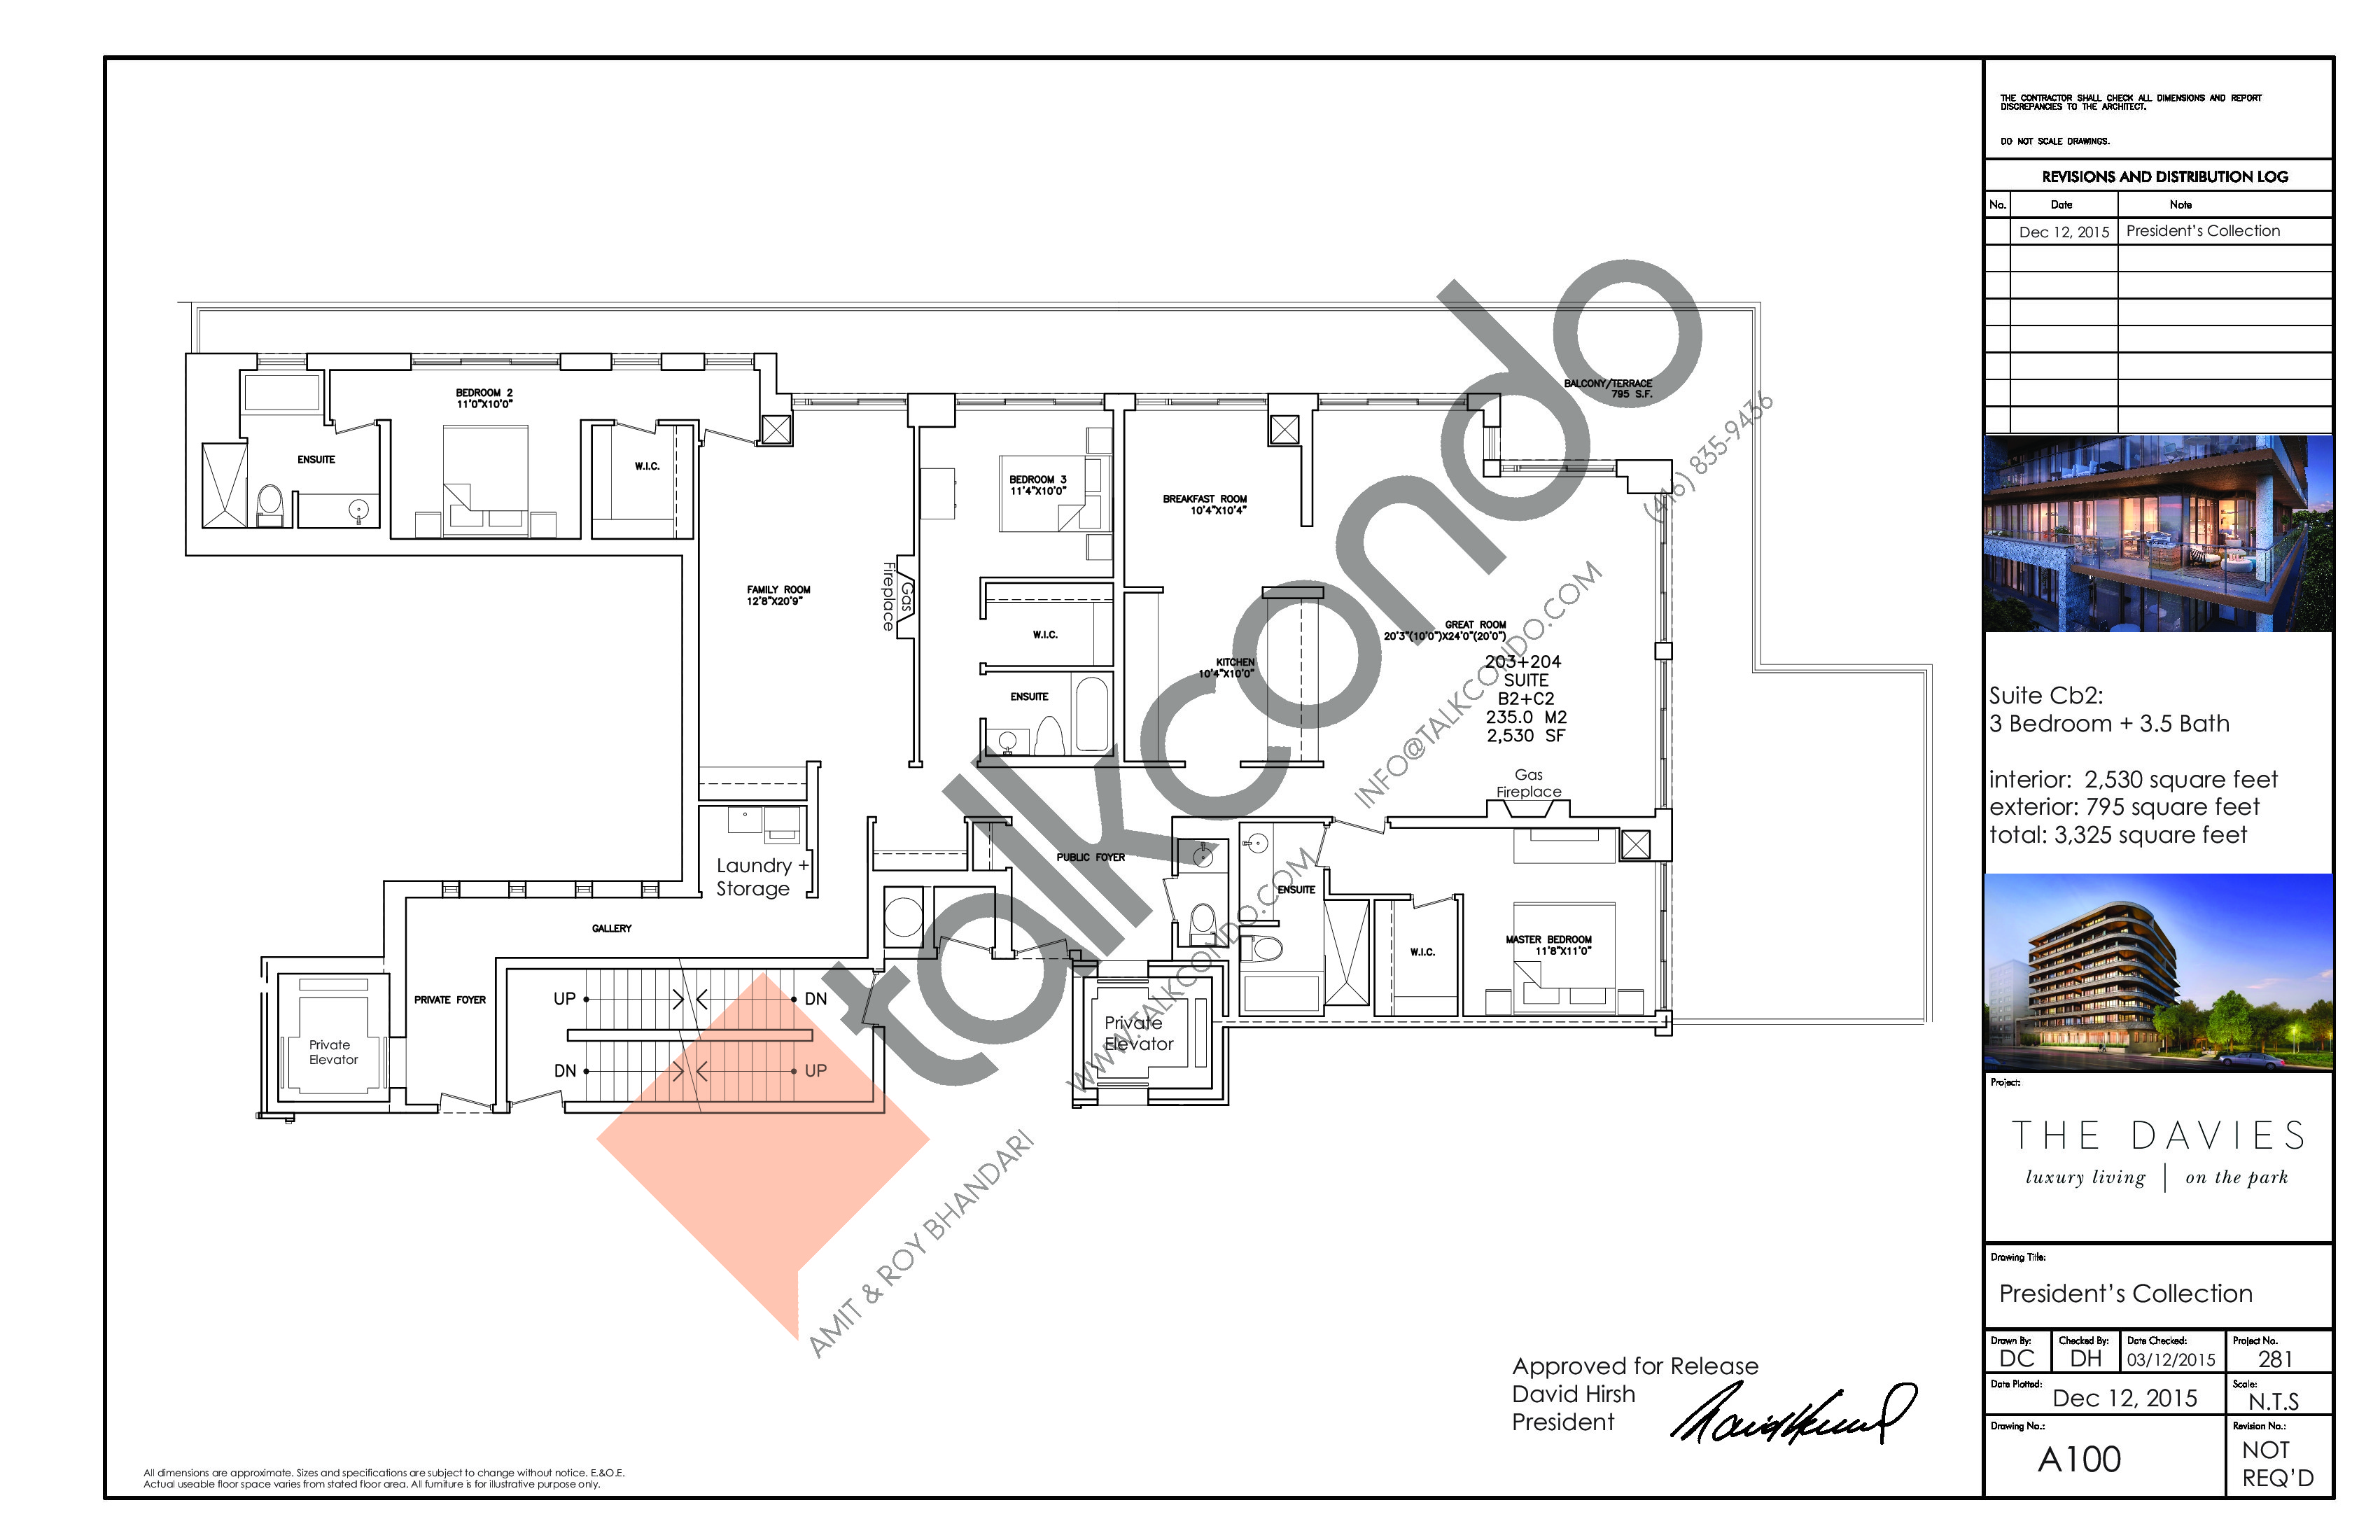 Suite Cb2 Floor Plan at The Davies - 2530 sq.ft